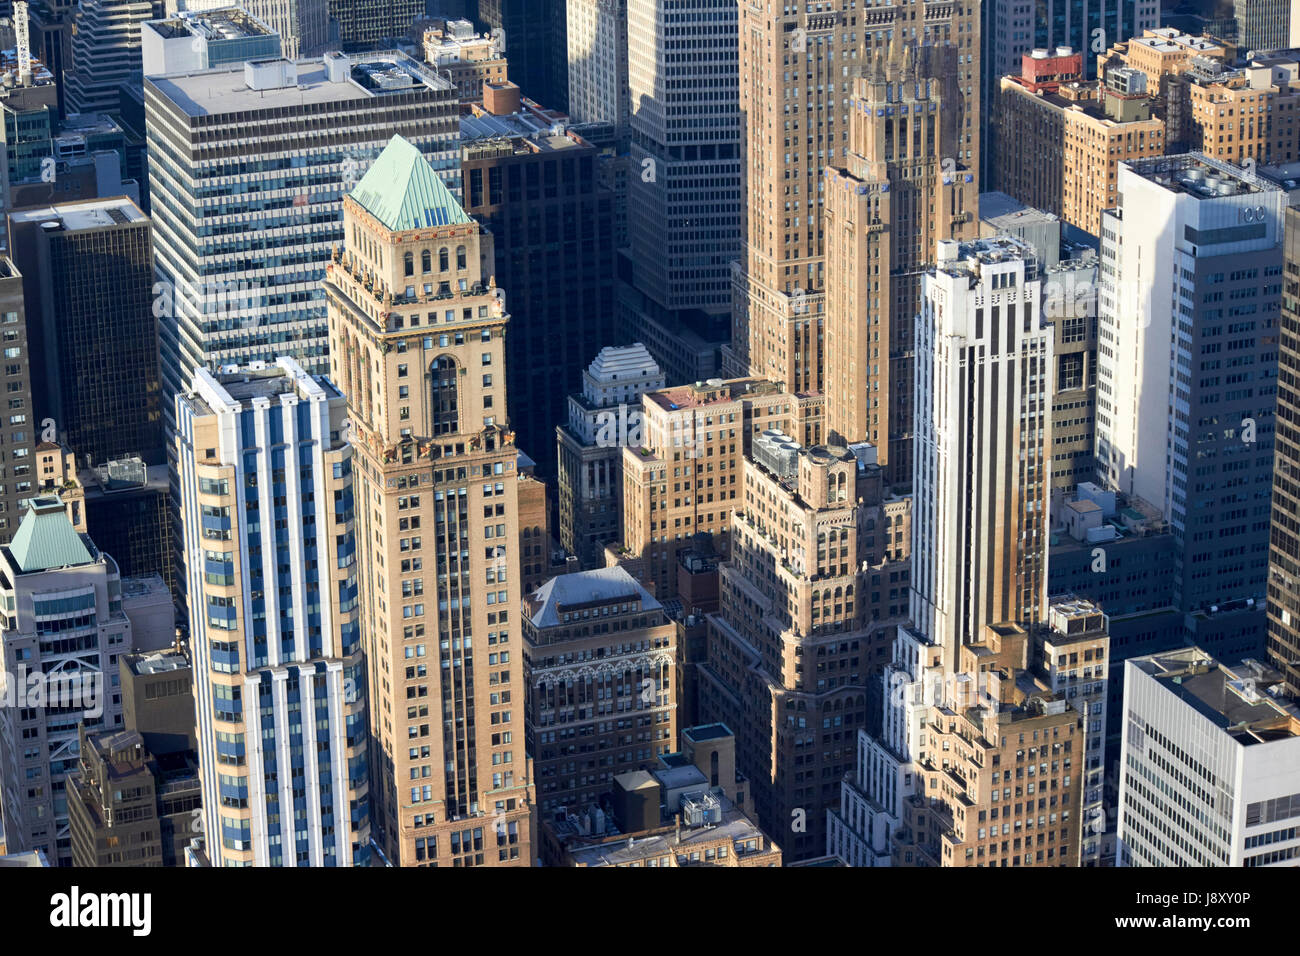 view over mixed era skyscrapers in midtown manhattan New York City USA including 425 fifth ave, mercantile building, - Stock Image